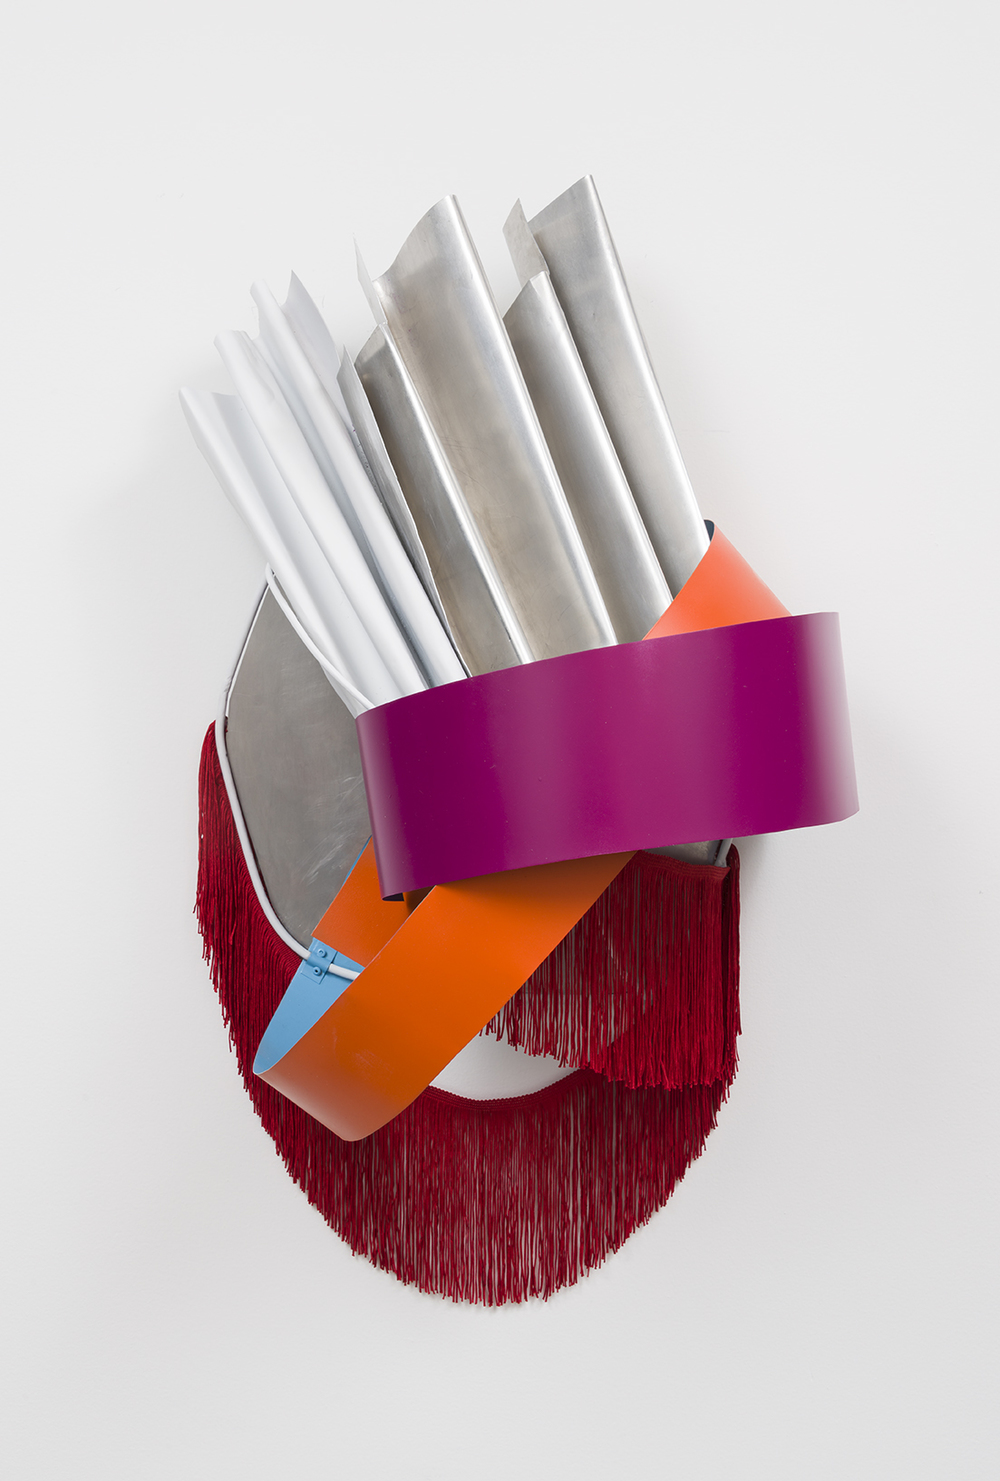 Untitled (Metal Relief), 2016  Acrylic, stainless steel, fringe, and aluminum  34 x 16 x 12 inches